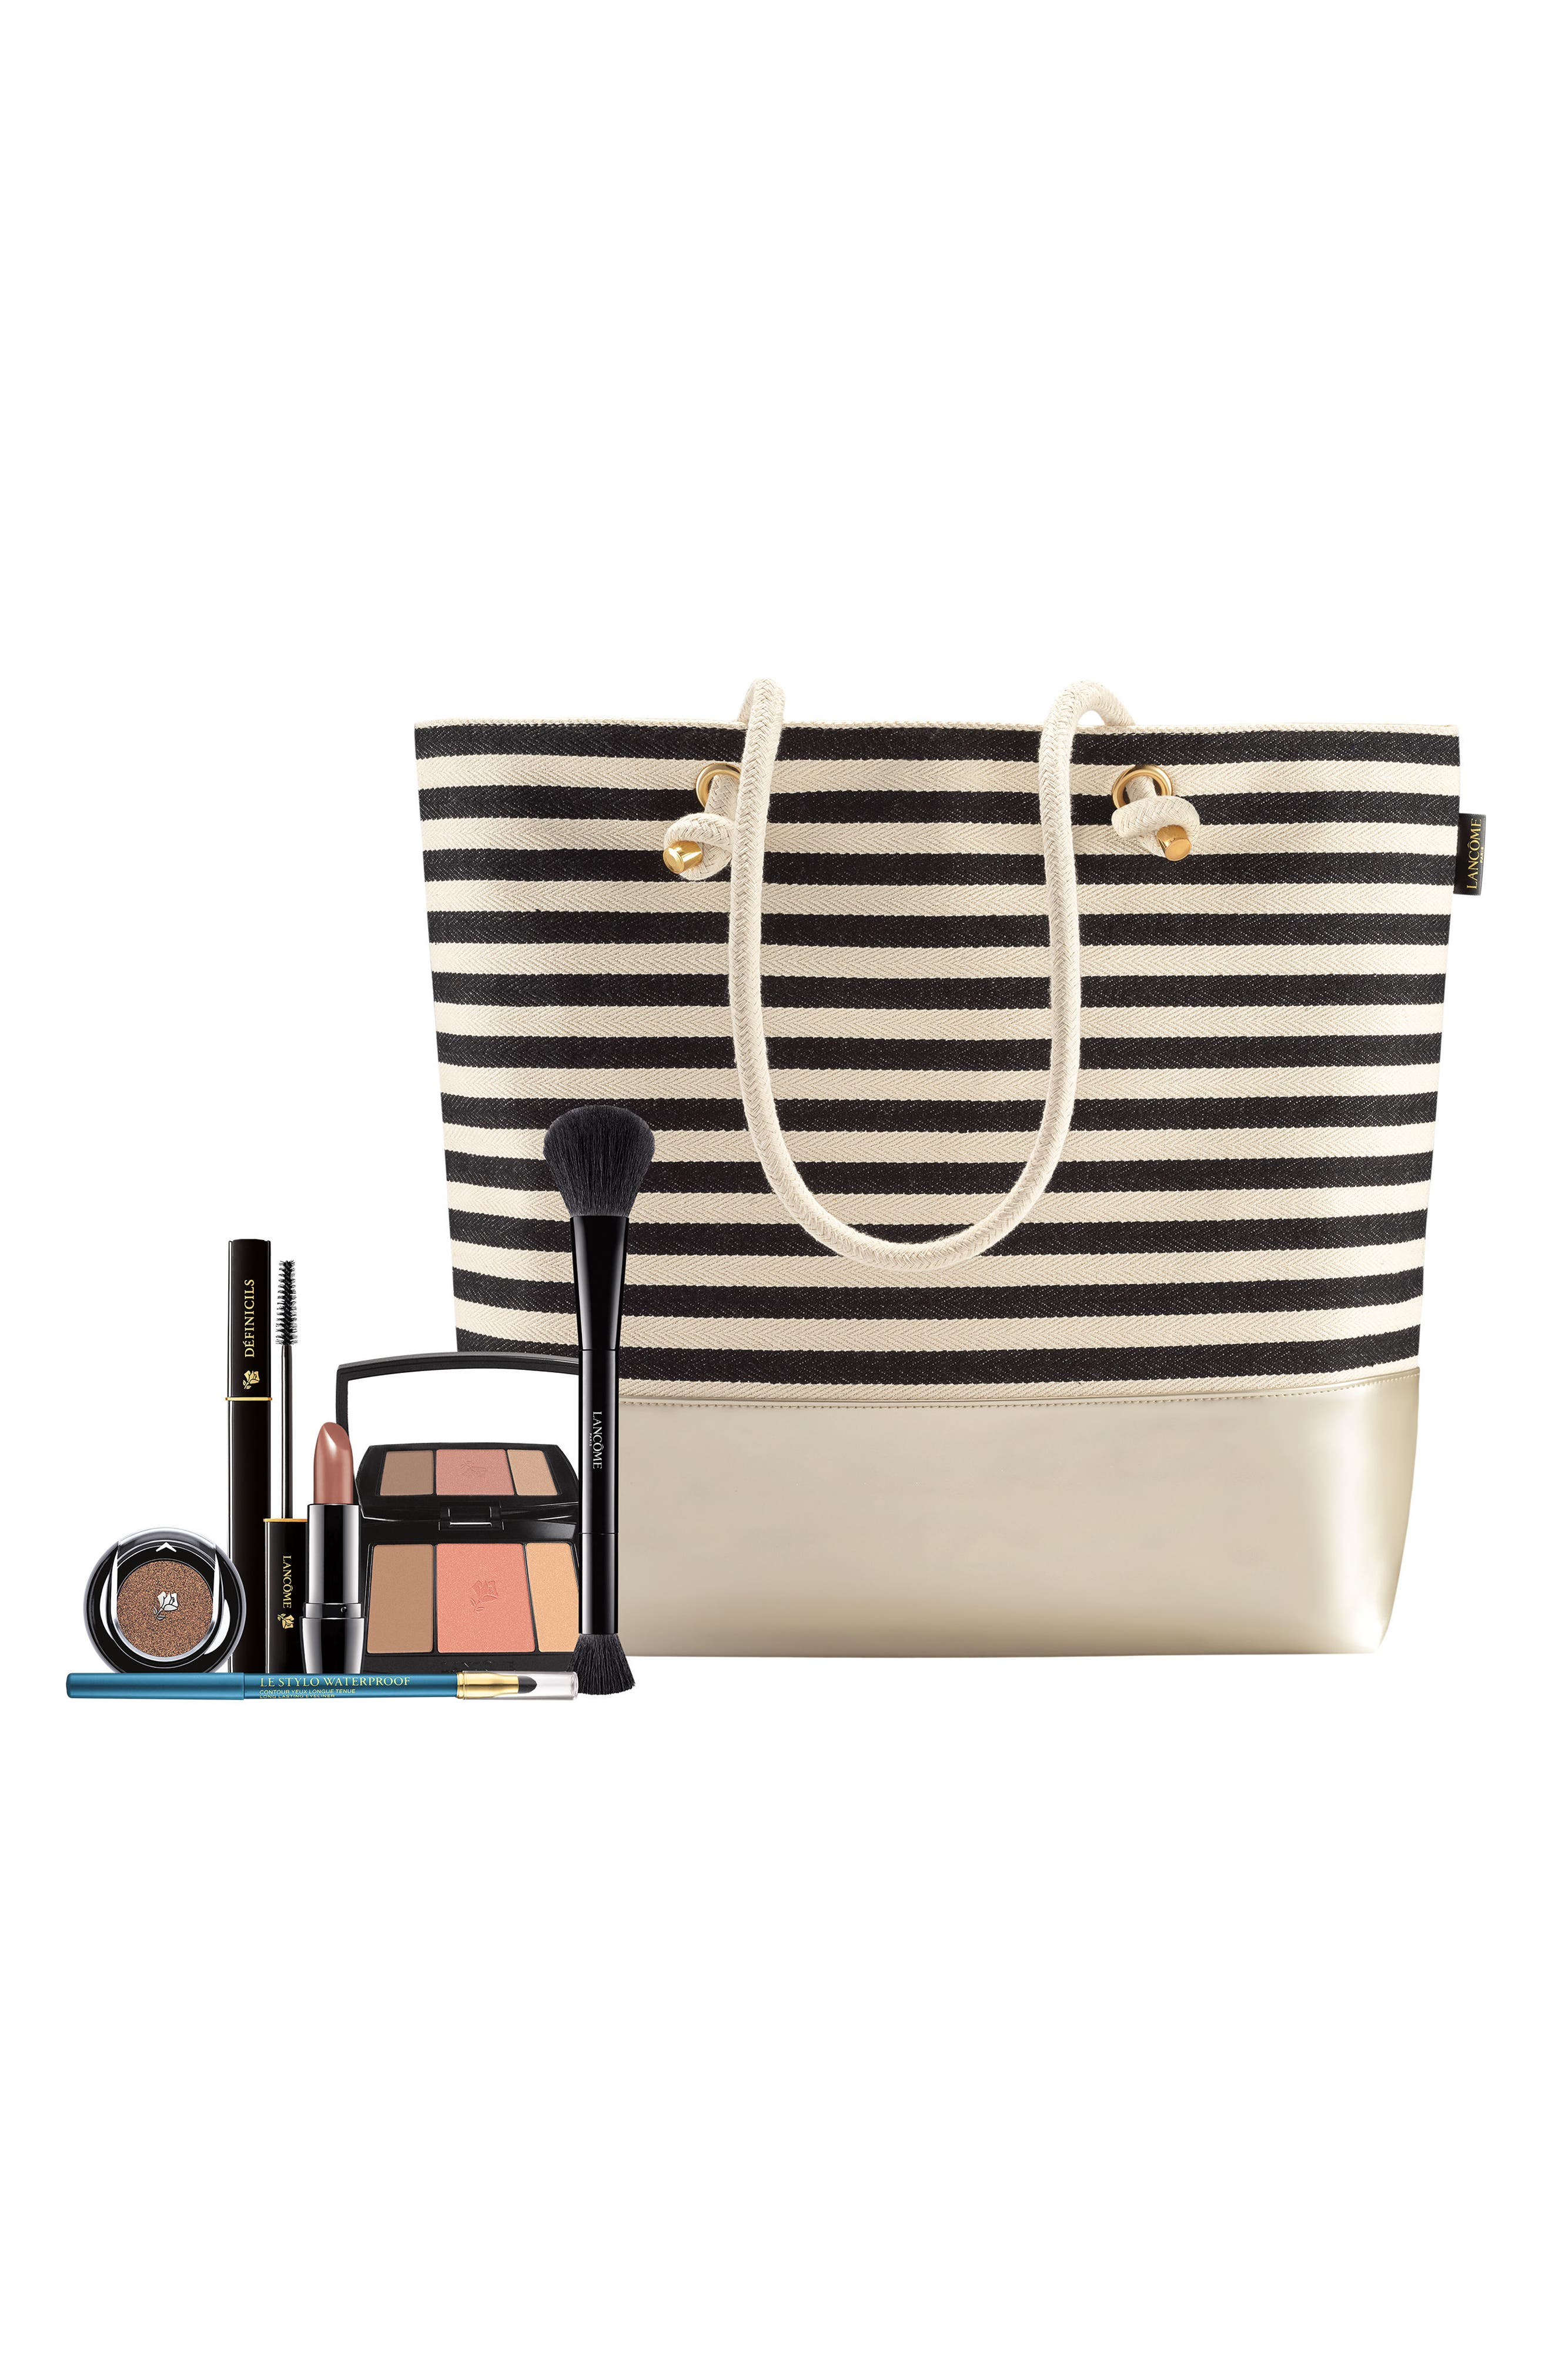 Lancôme French Riviera Collection (Purchase with any Lancôme Purchase)